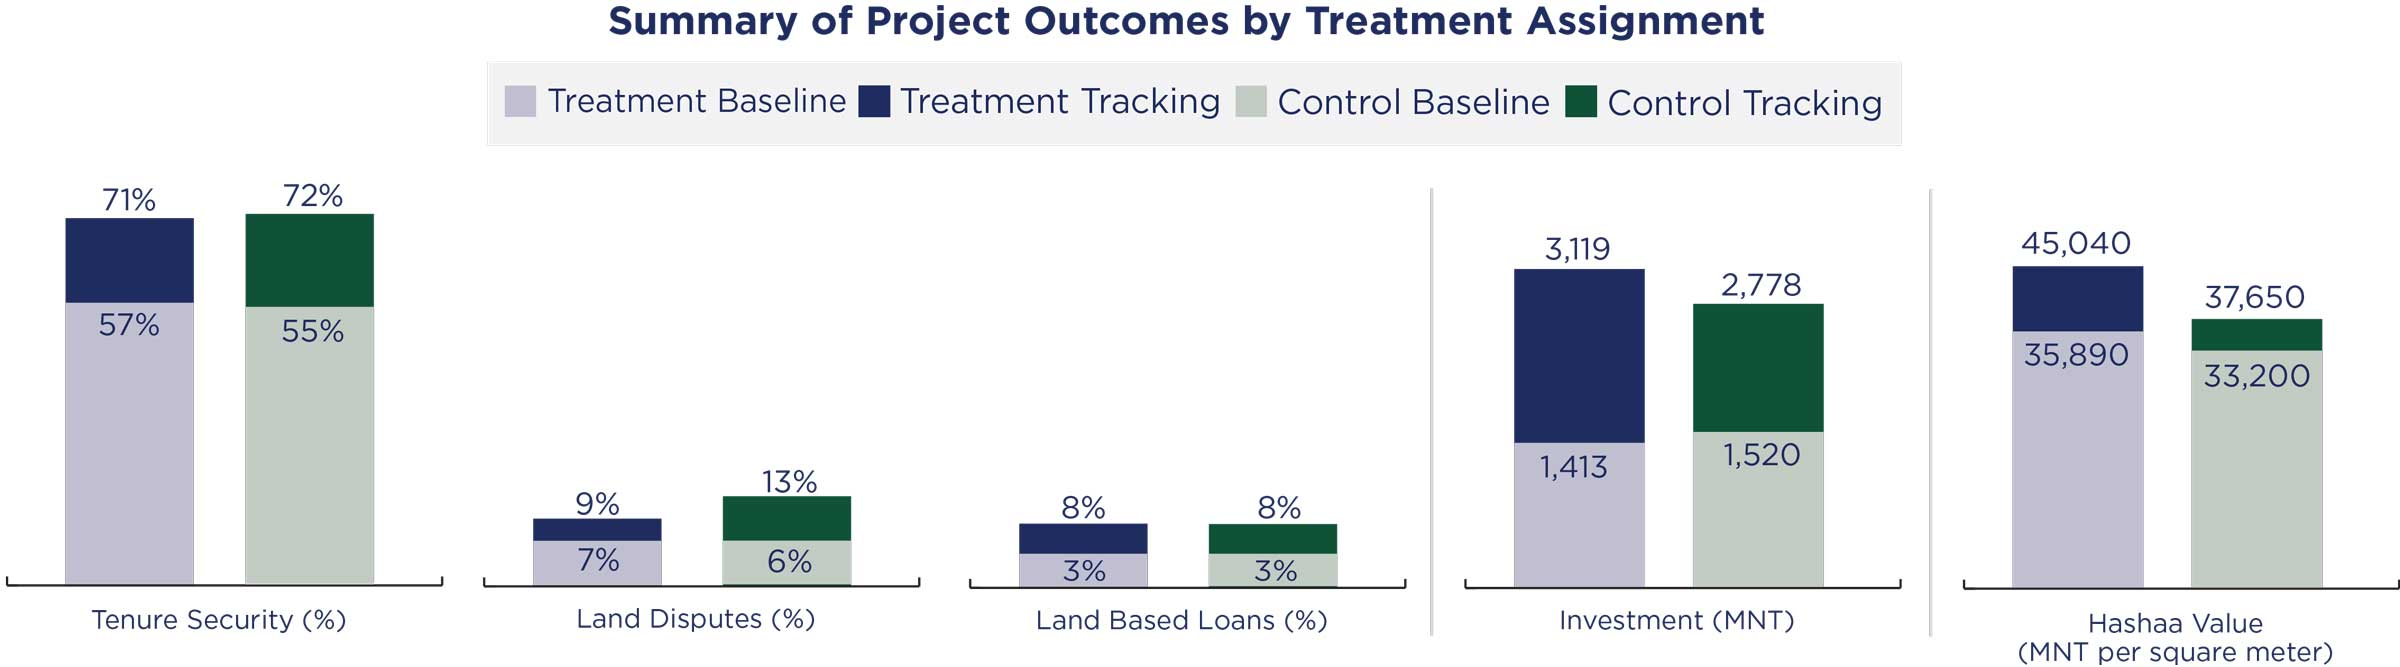 Summary of Project Outcomes by Treatment Assignment comparison chart